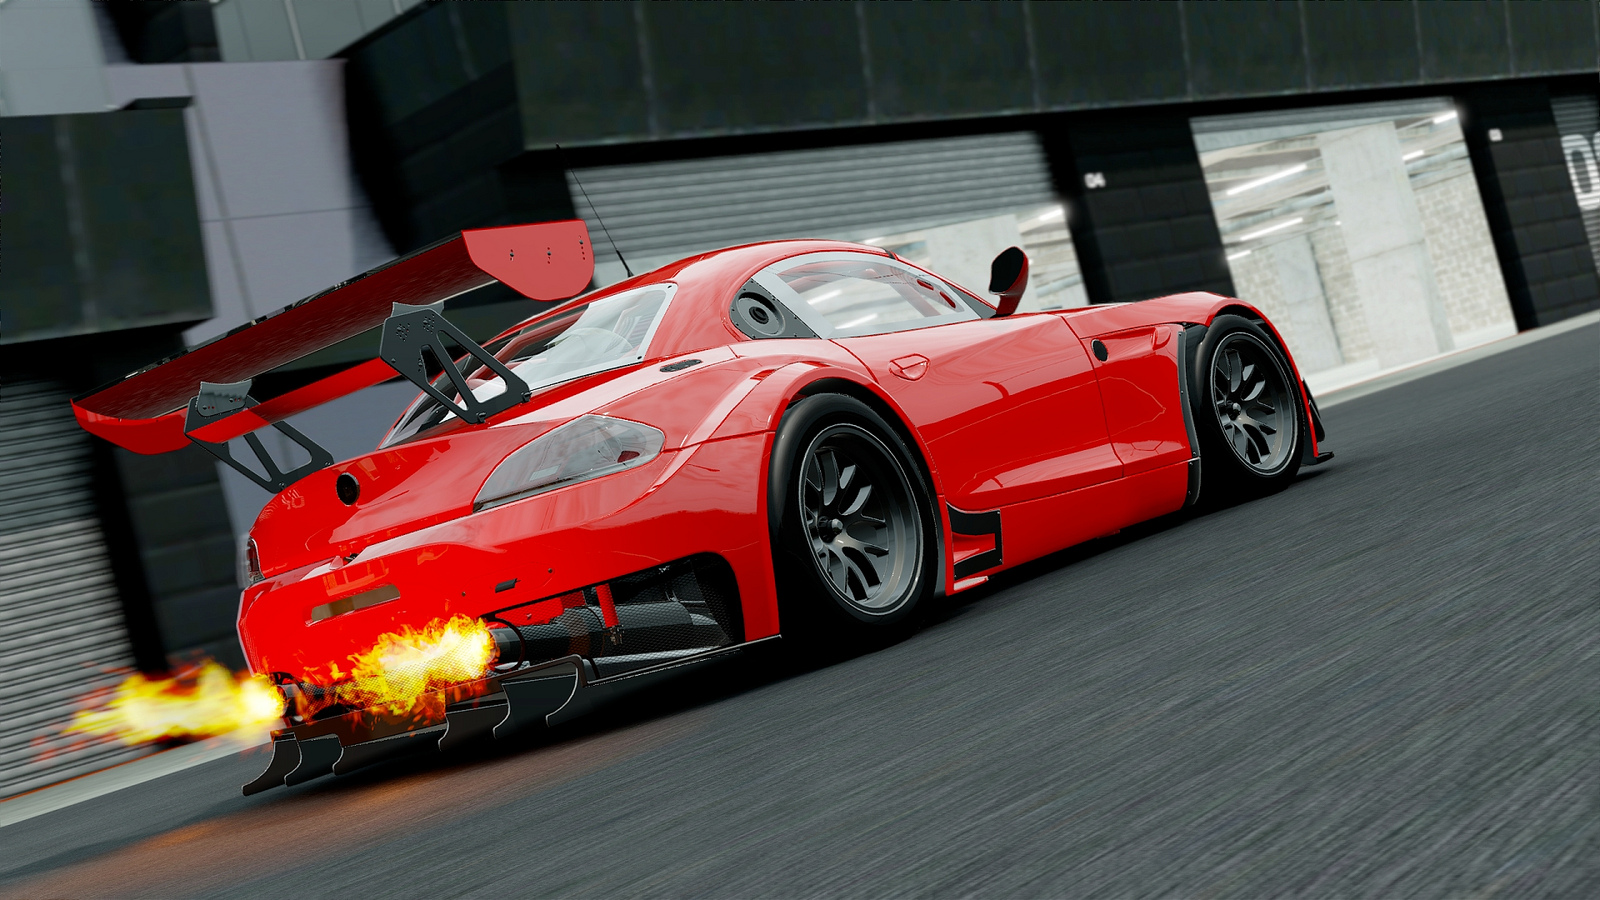 Project CARS Developer Struggling With Wii U Version Of The Game